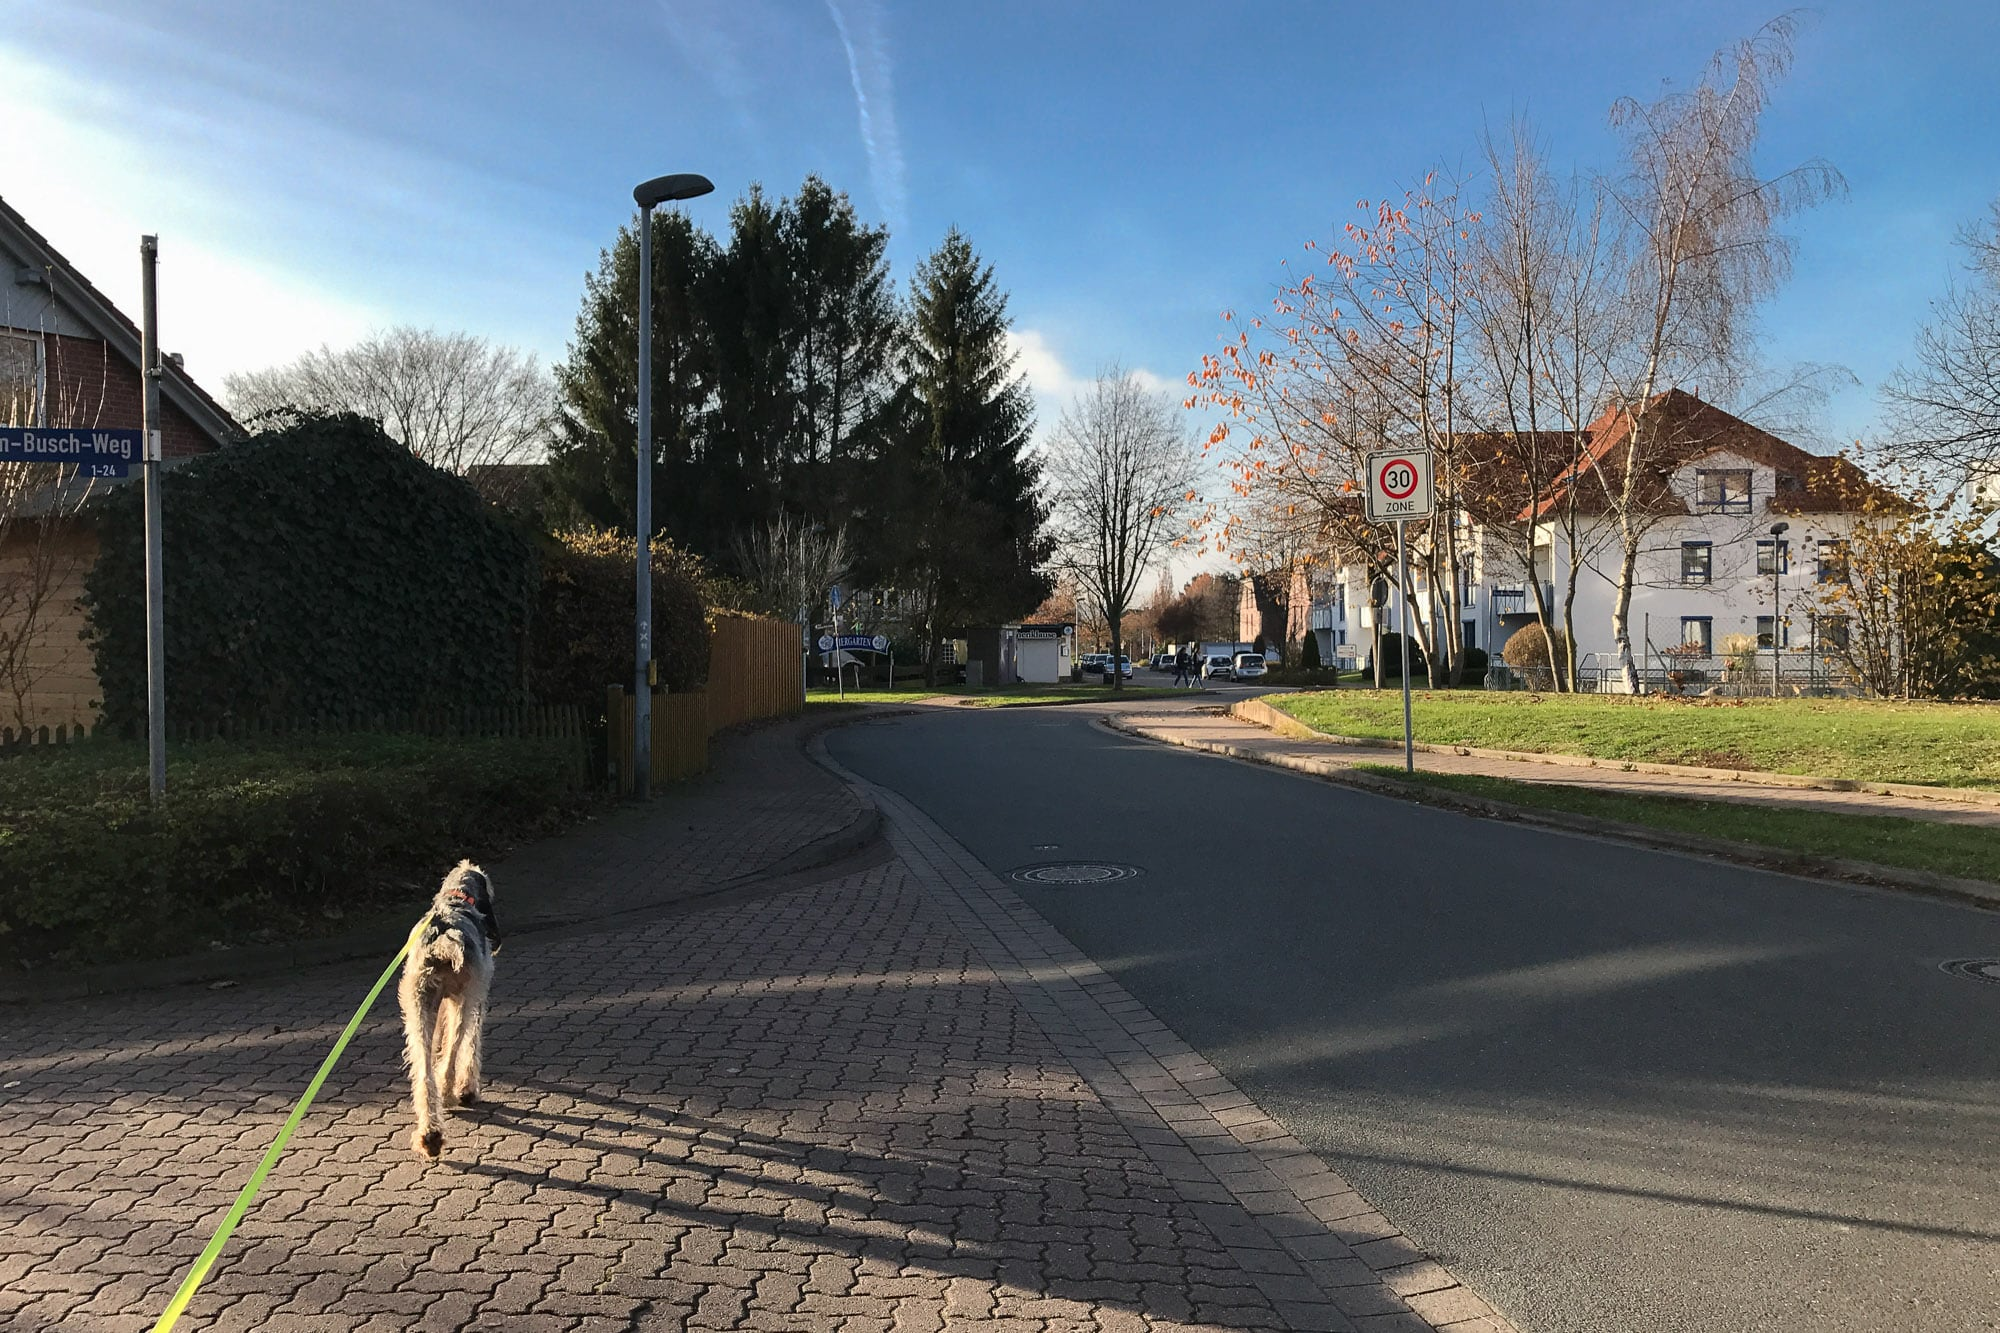 last days in Bad Nenndorf